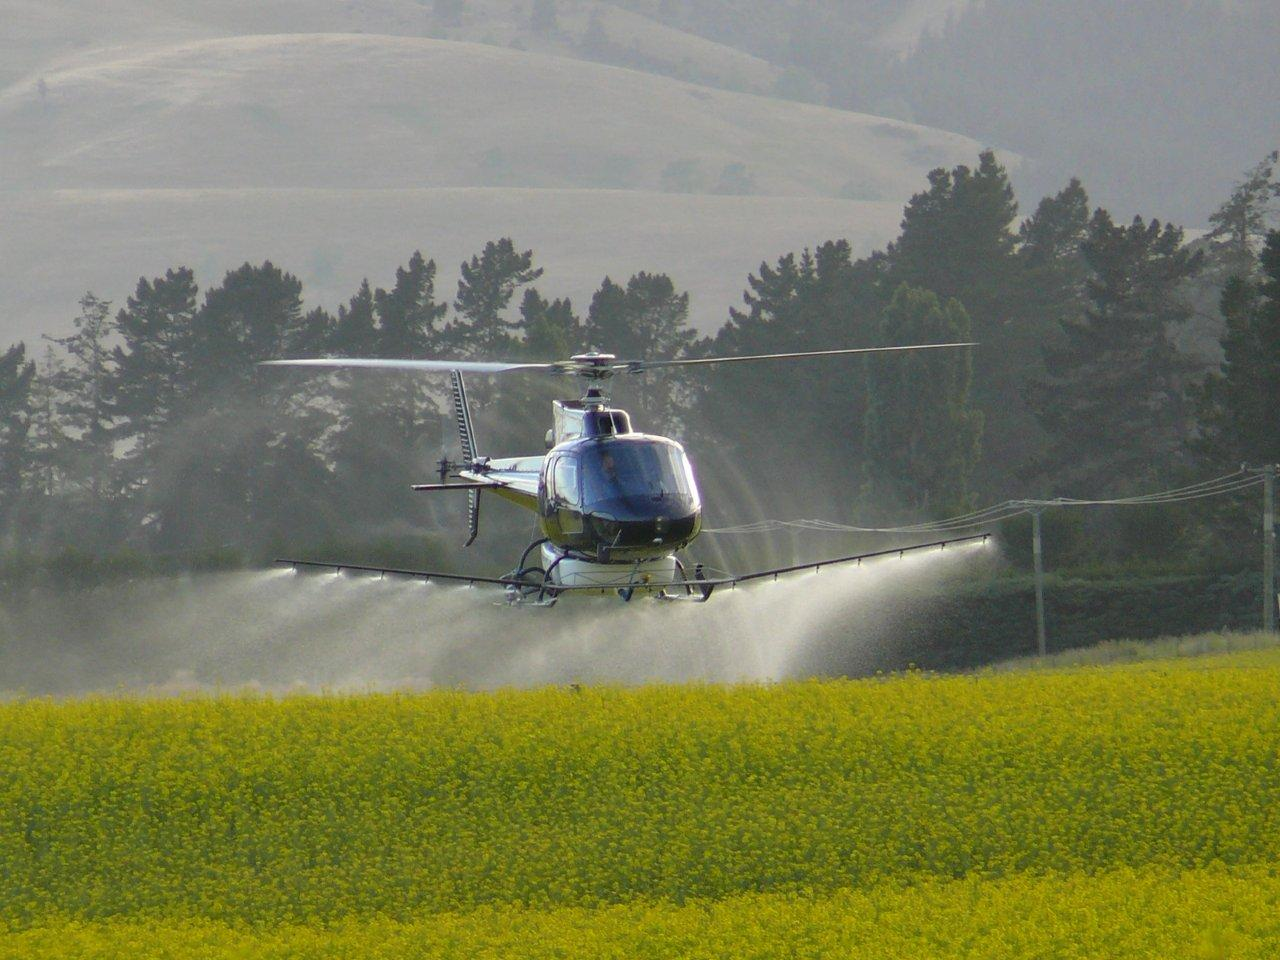 helicopter crop spraying with Weed Control Idl 1 Idt 3957 Id 22772 on New Report Says Global Gmo Crop Cultivation Is Declining Worldwide Most Production  es From Just Six Countries as well Watch additionally Stock Photo Helicopter Spraying Maturing Potato Crop With Trace Elements And A 7513039 also Japan Made Variant Series Helicopter further Stock Photo Retired Old Crop Dusting Helicopter Image30018420.